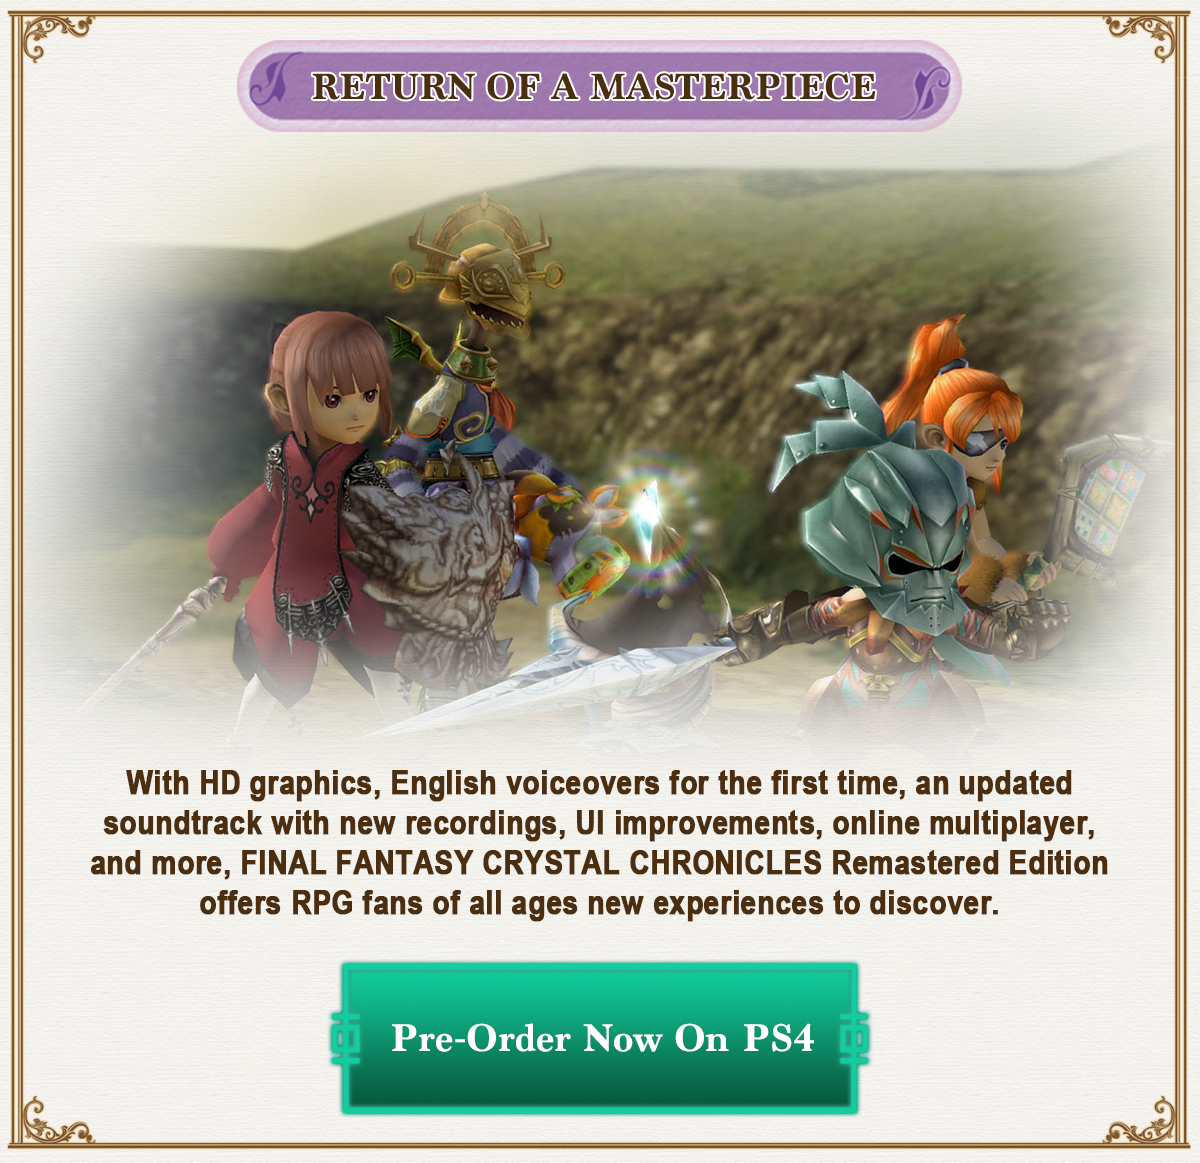 With HD graphics, English voiceovers for the first time, an updated soundtrack with new recordings, UI improvements, online multiplayer, and more, FINAL FANTASY CRYSTAL CHRONICLES Remastered Edition offers RPG fans of all ages new experiences to discover.